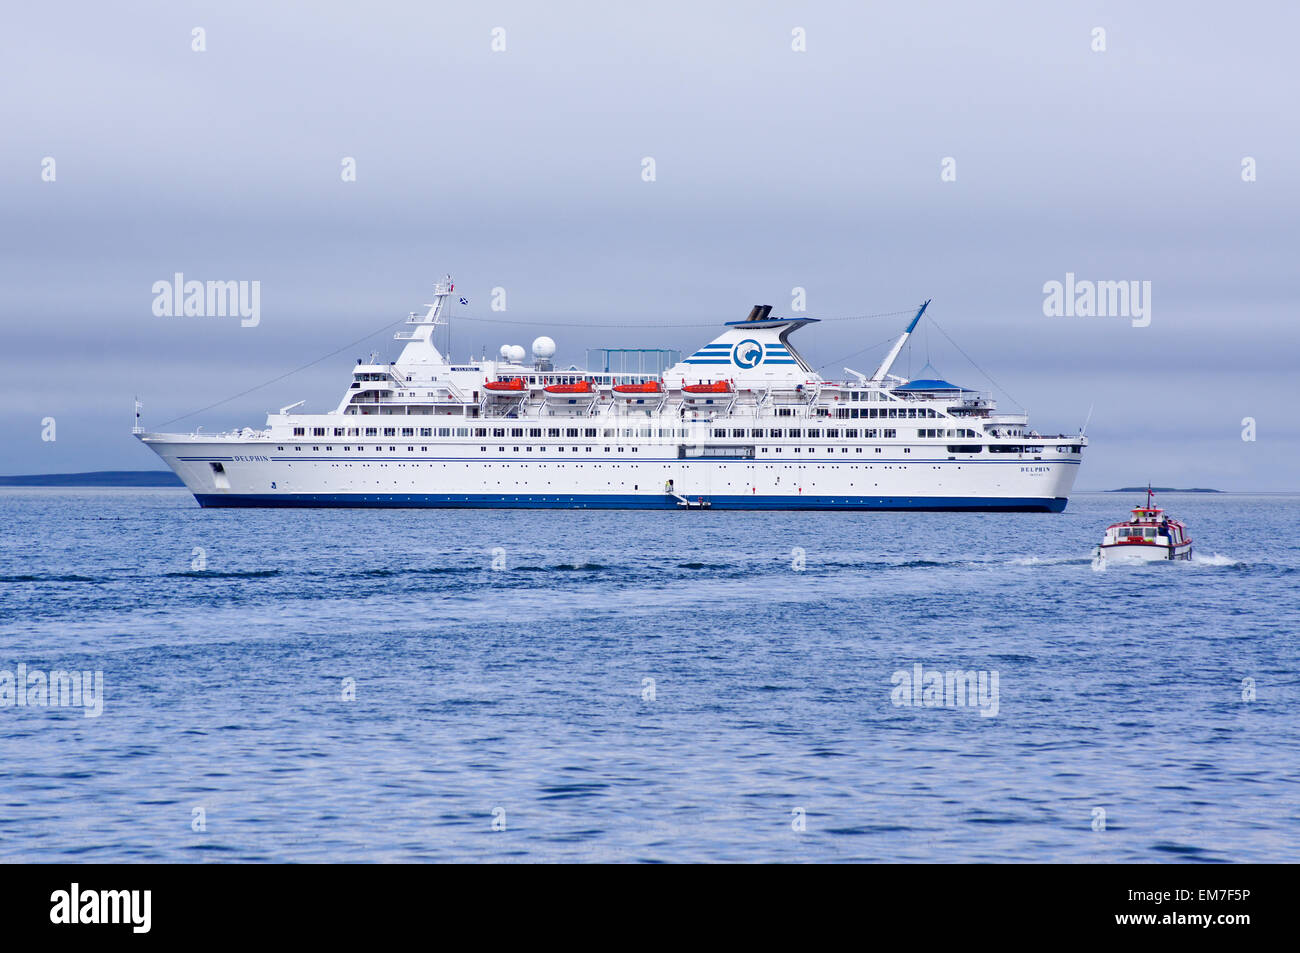 MS Delphin cruise ship ocean liner moored off Kirkwall harbour, Orkney, Scotland - Stock Image